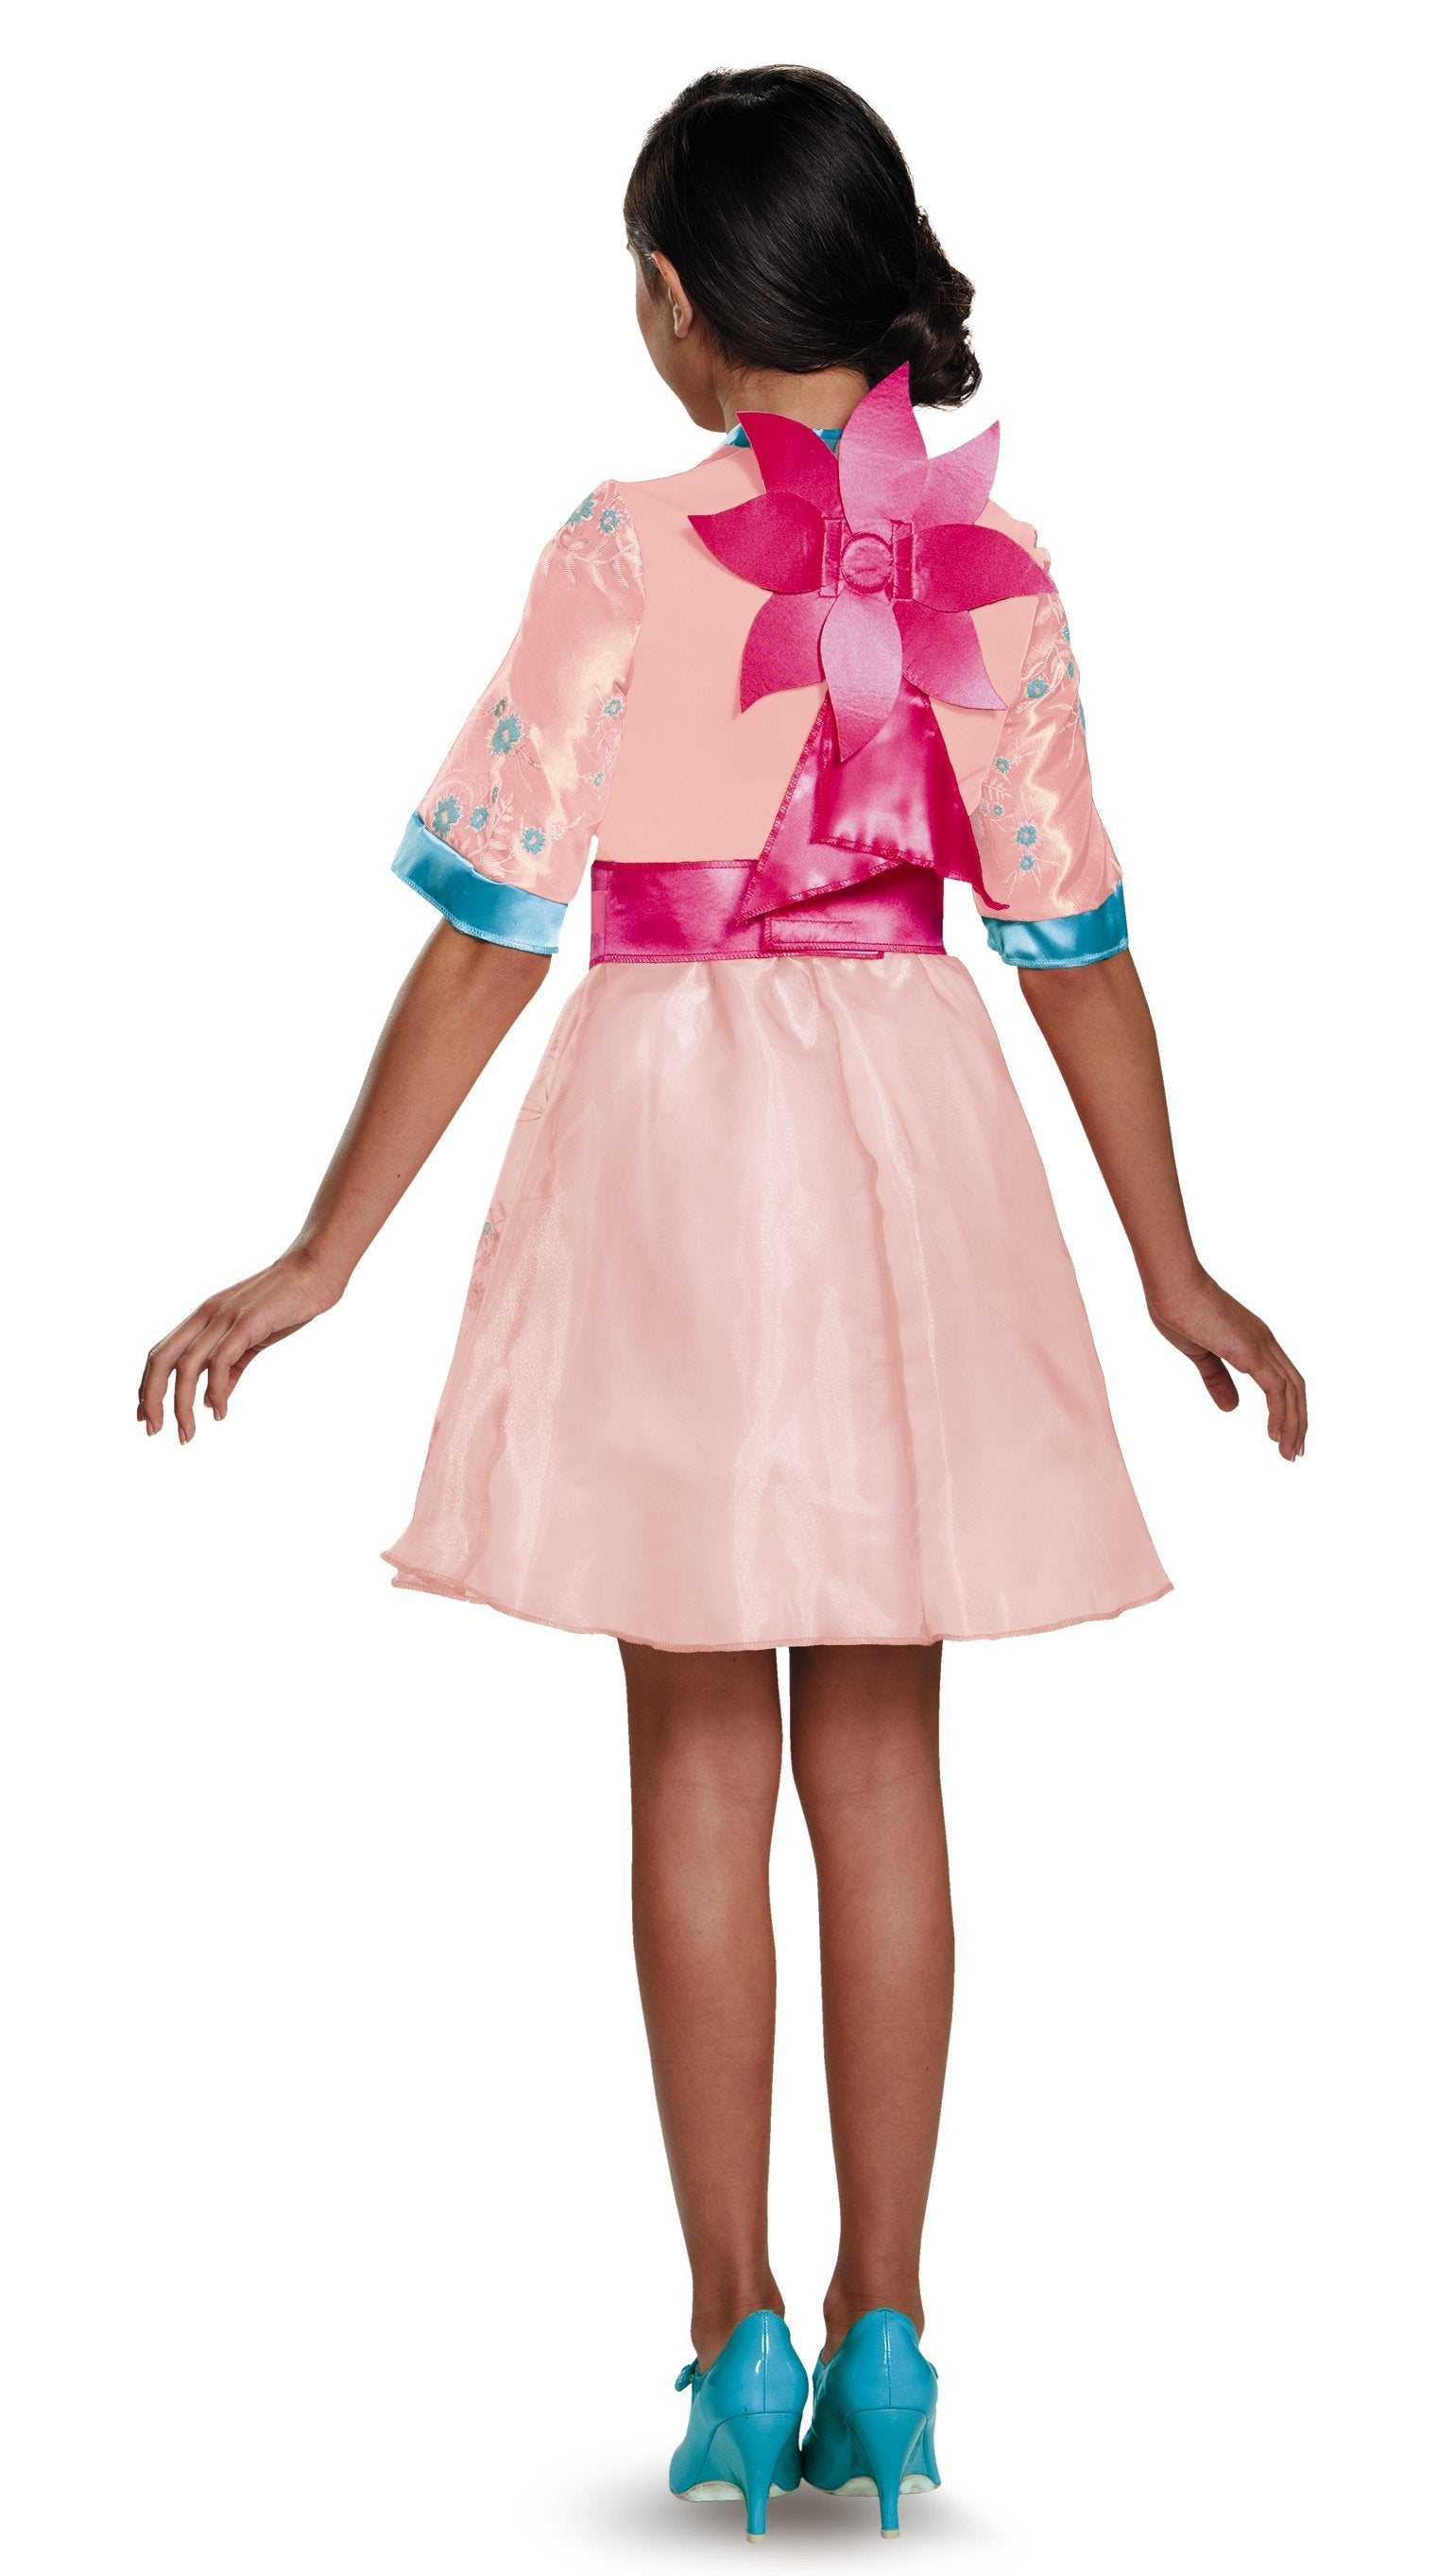 Disguise Costumes Girls Lonnie Coronation Deluxe Costume - The Descendants